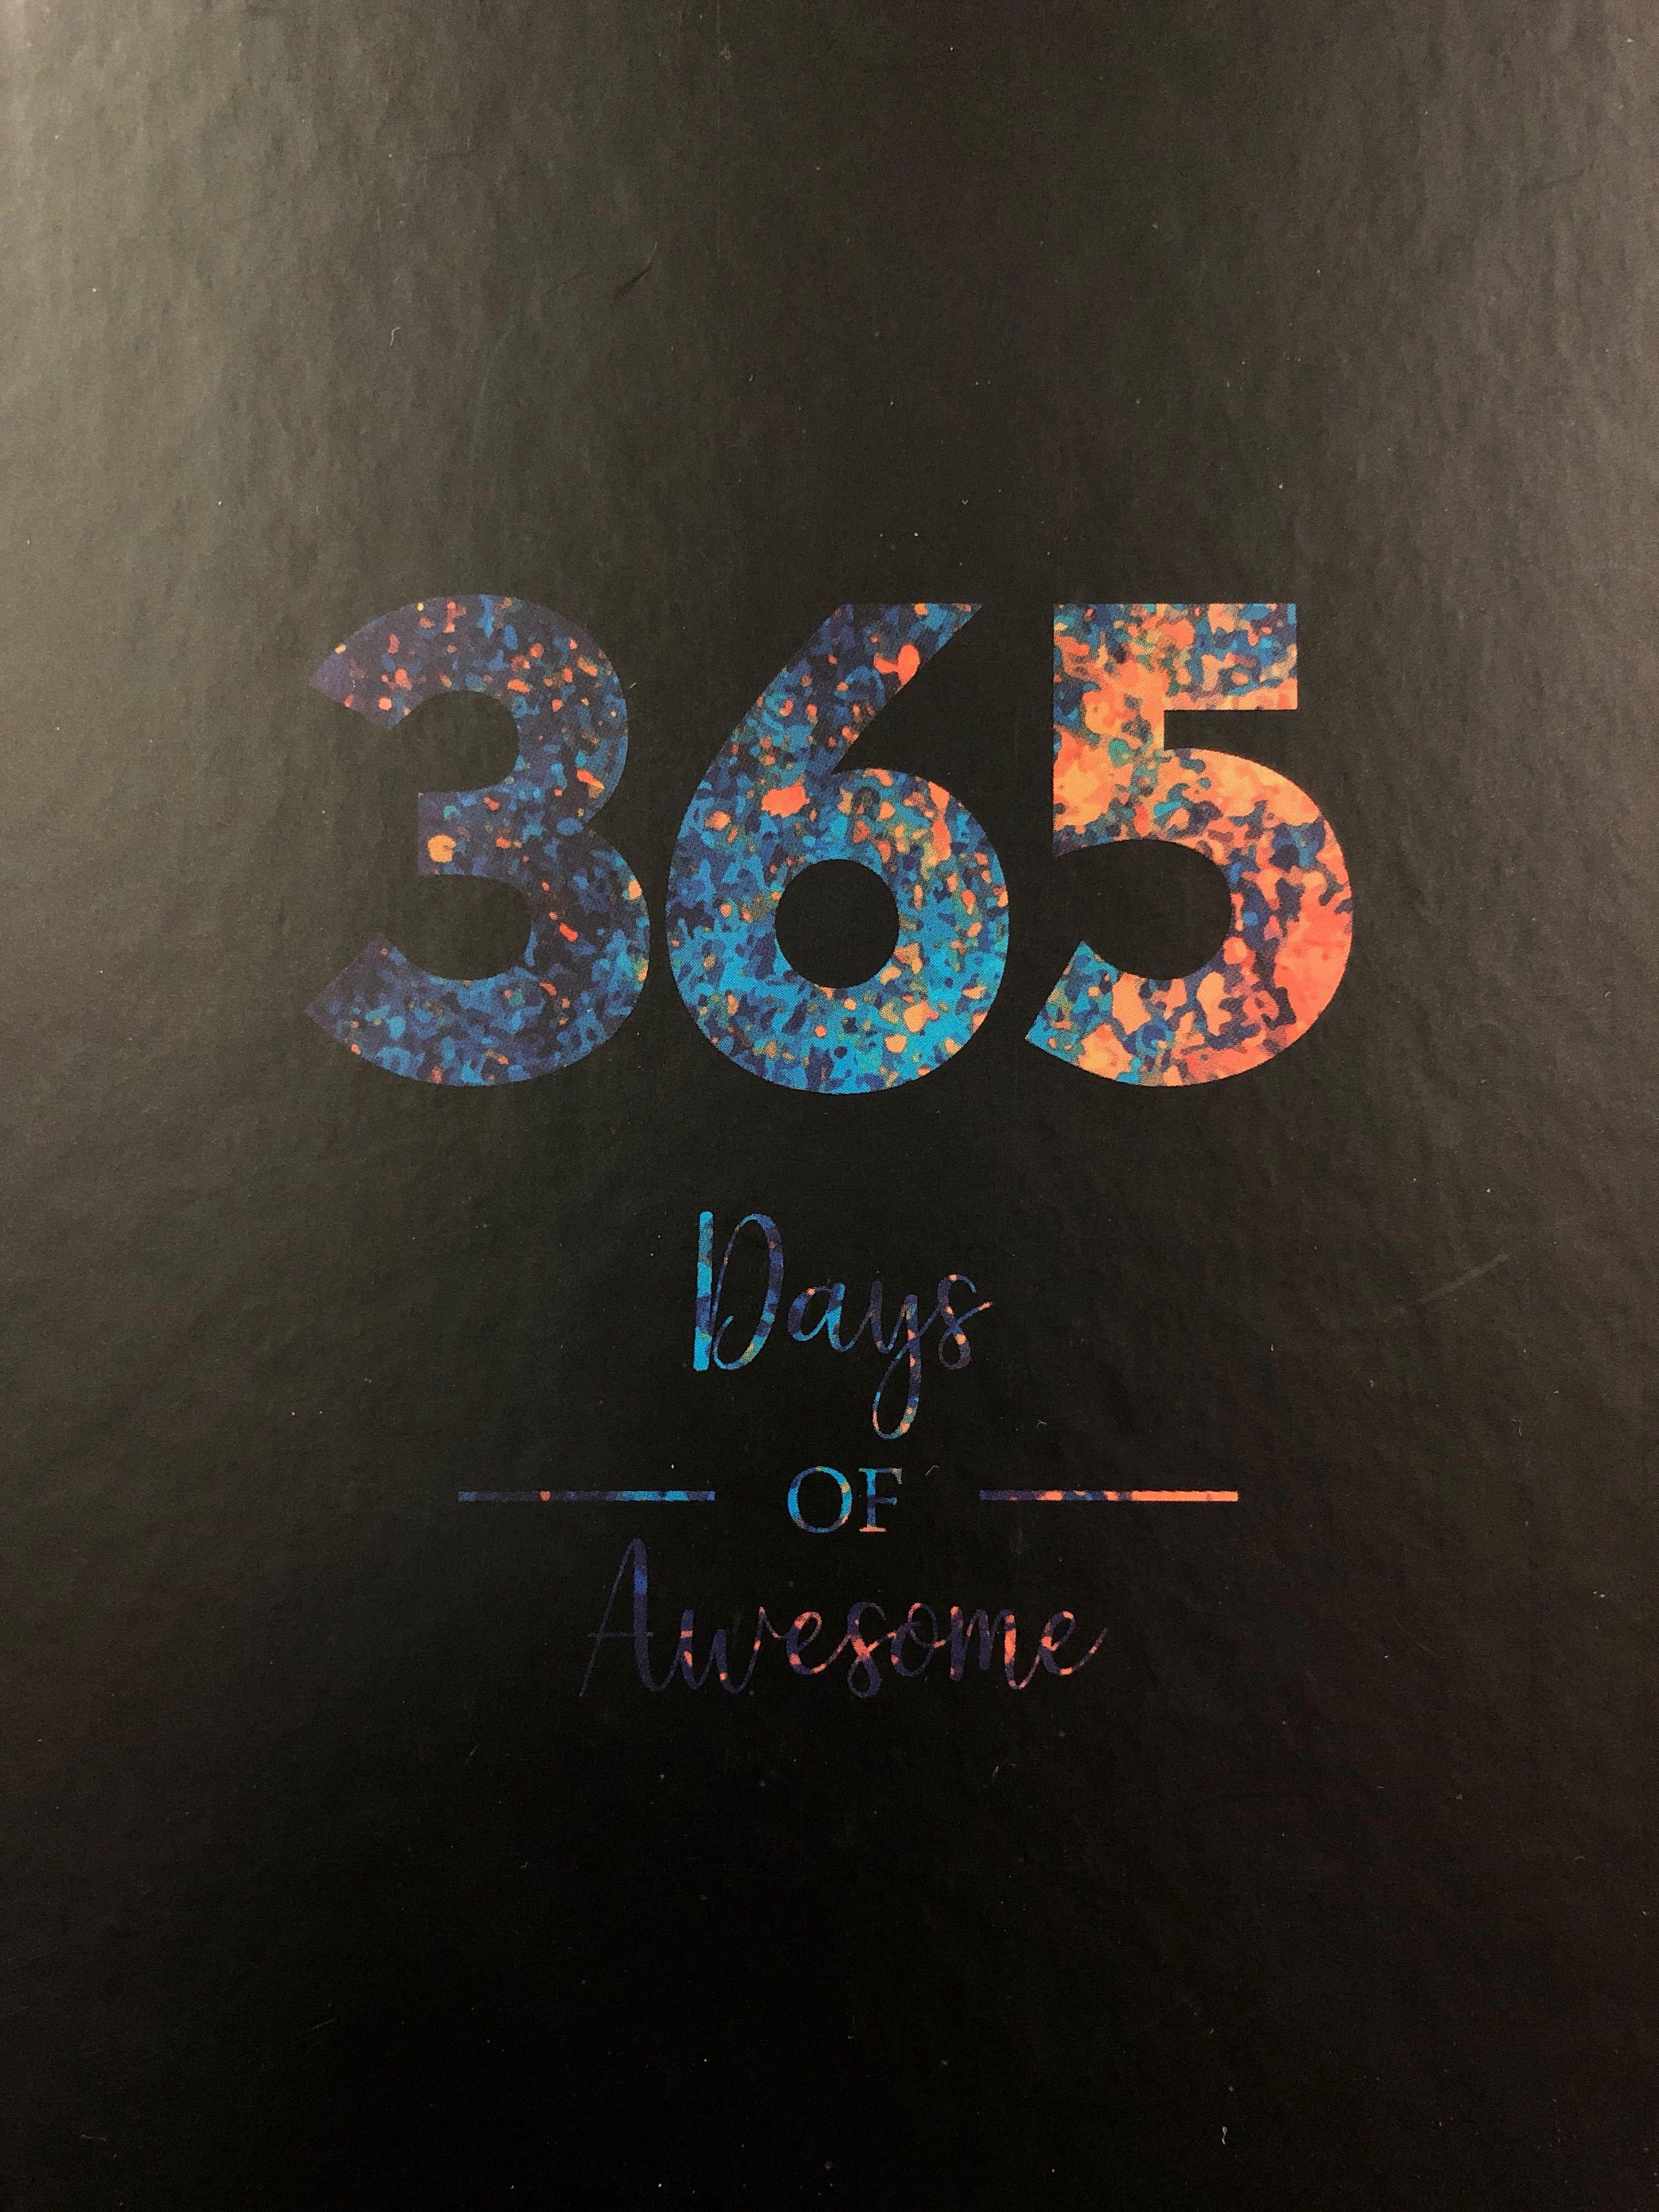 2019 Planner 365 Days Of Awesome From National Book Store Looking